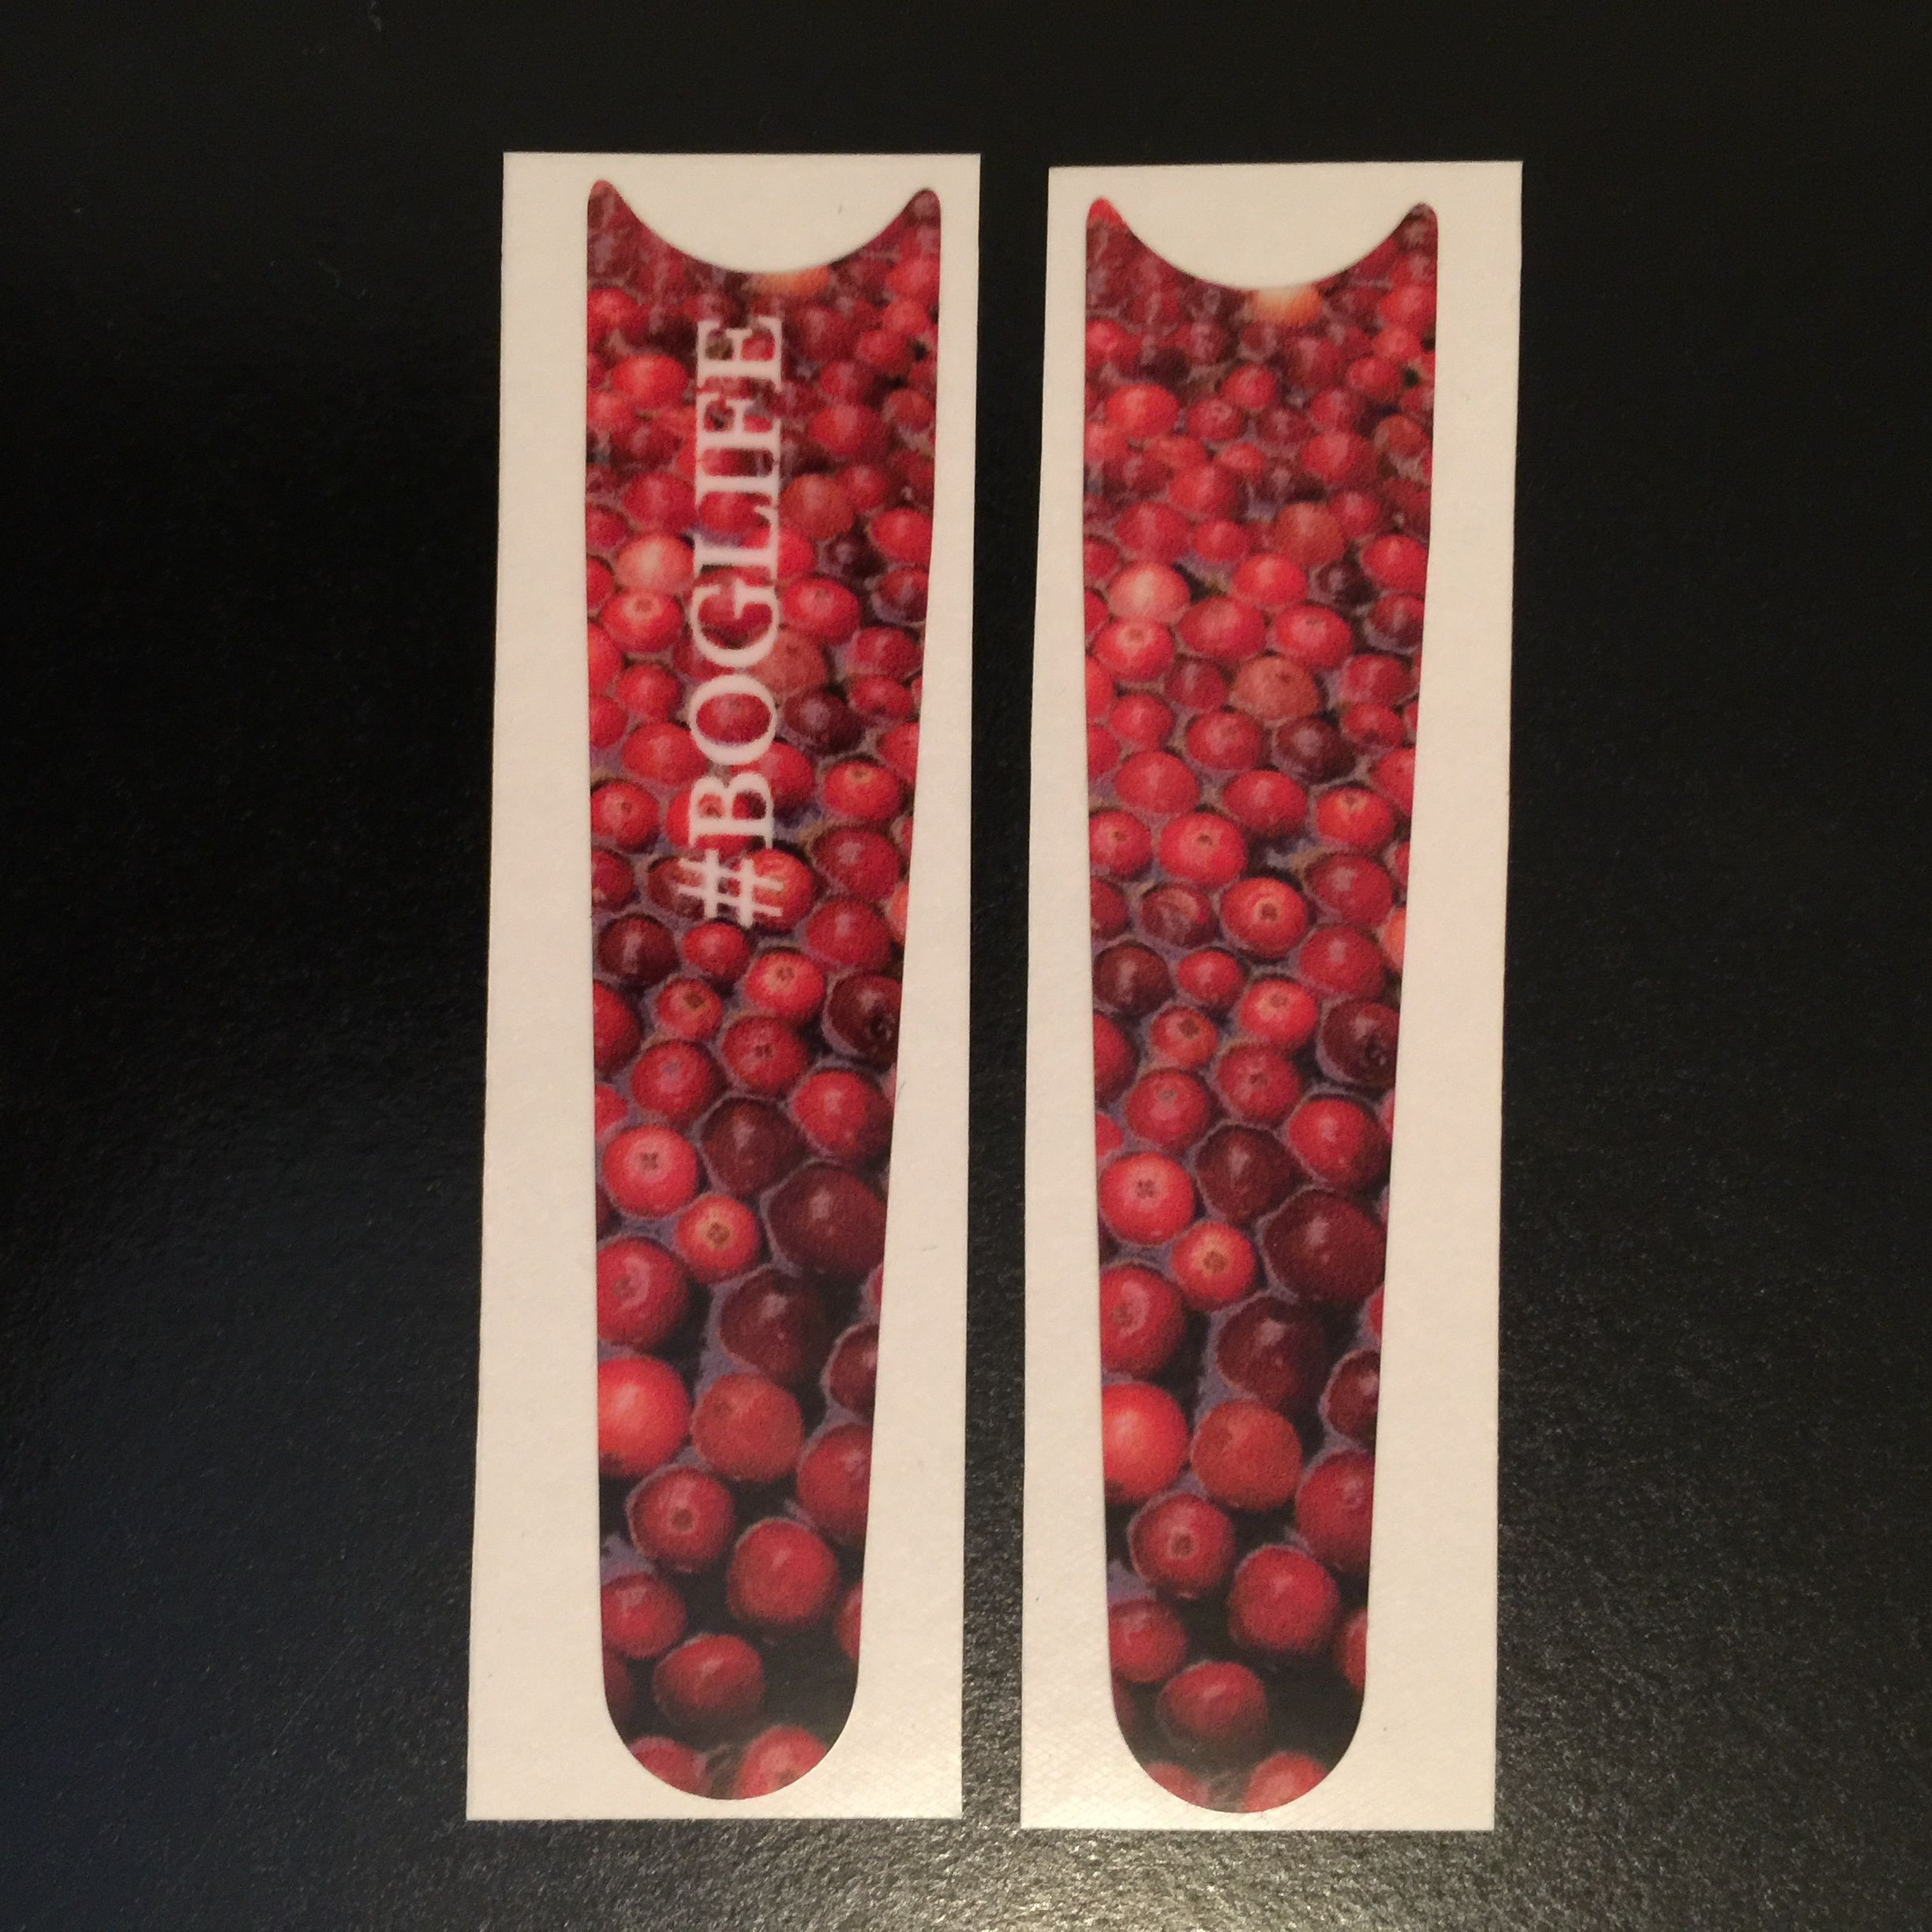 Love The Ocean Spray Cranberry Bog At Food And Wine Get This Hipster Hashtag Band In Our Cover Bands Store At Dv Ocean Spray Cranberry Cover Band Wine Recipes